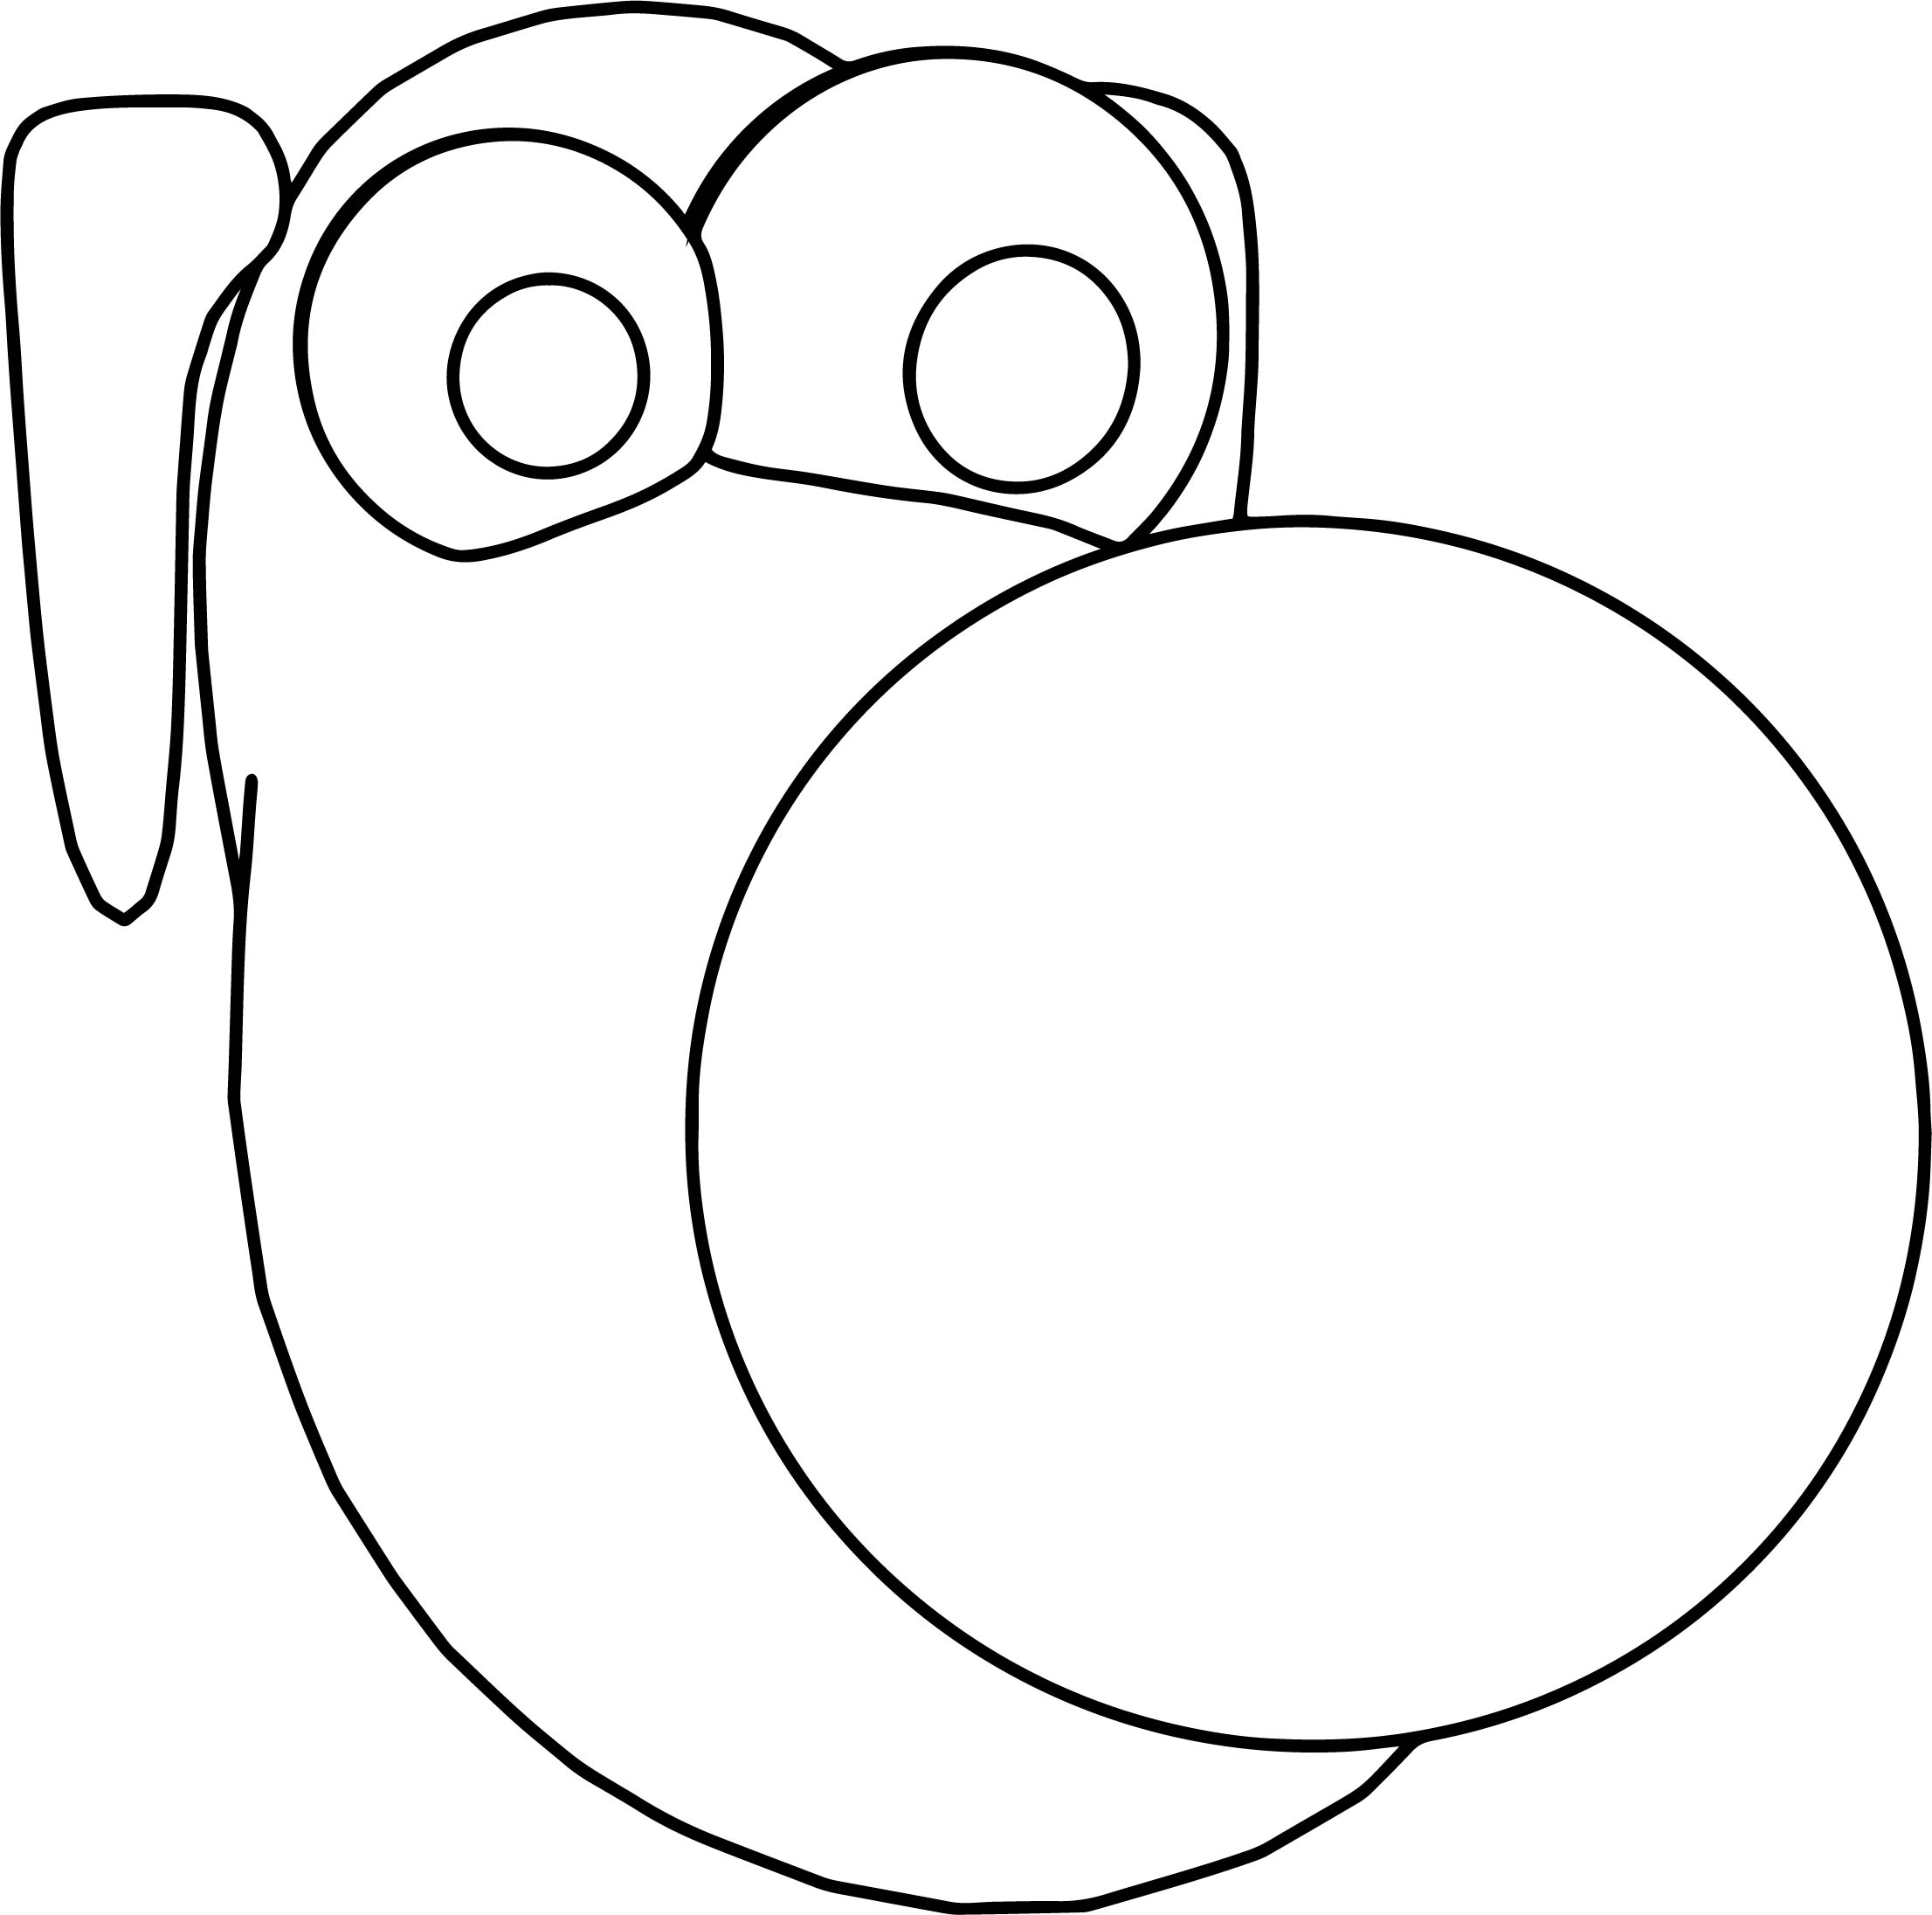 Dog face coloring pages for Dog face coloring page